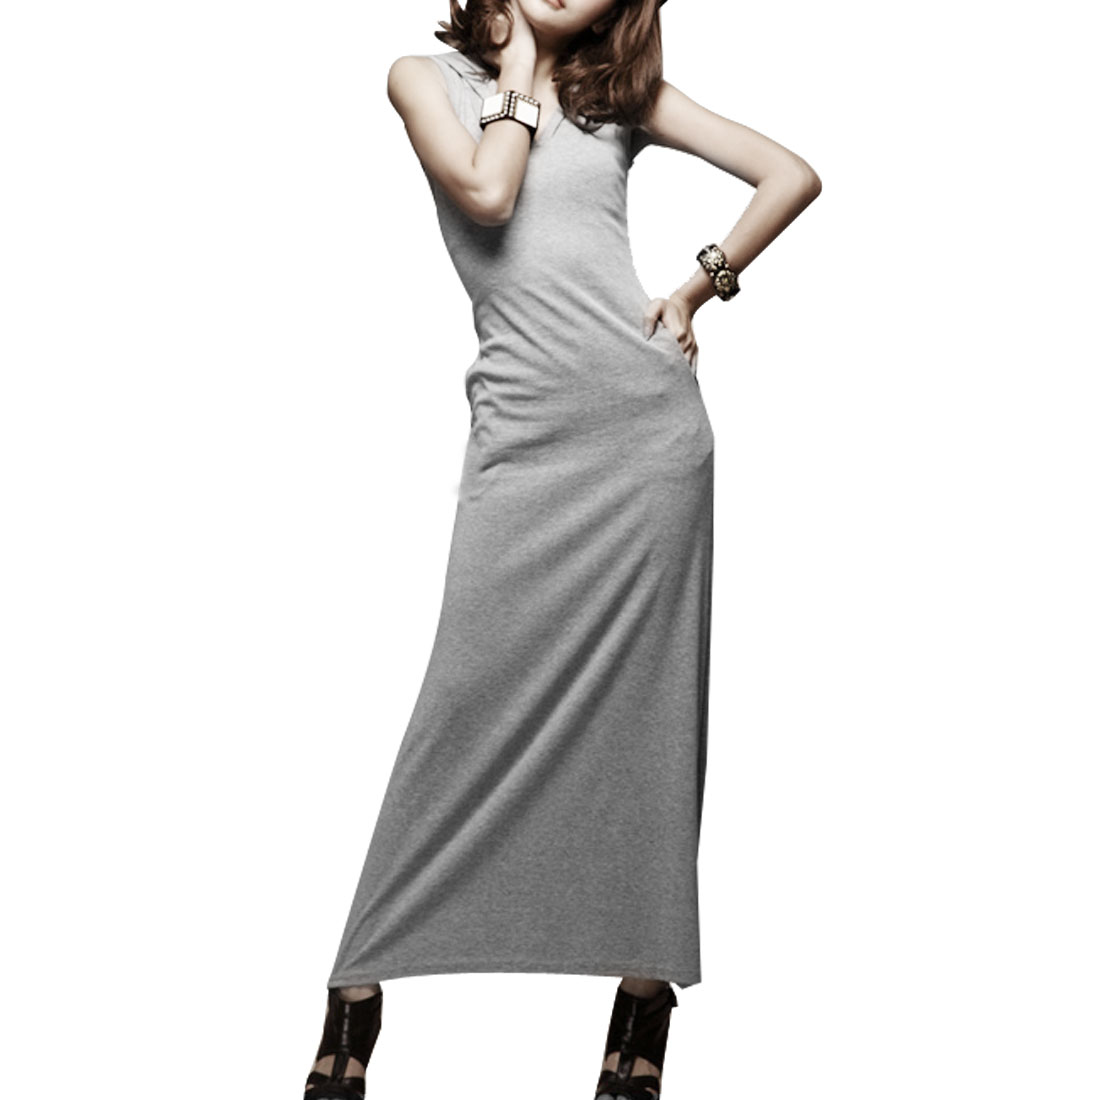 Woman Pure Gray Pullover Backless Summer Leisure Long Dress XS